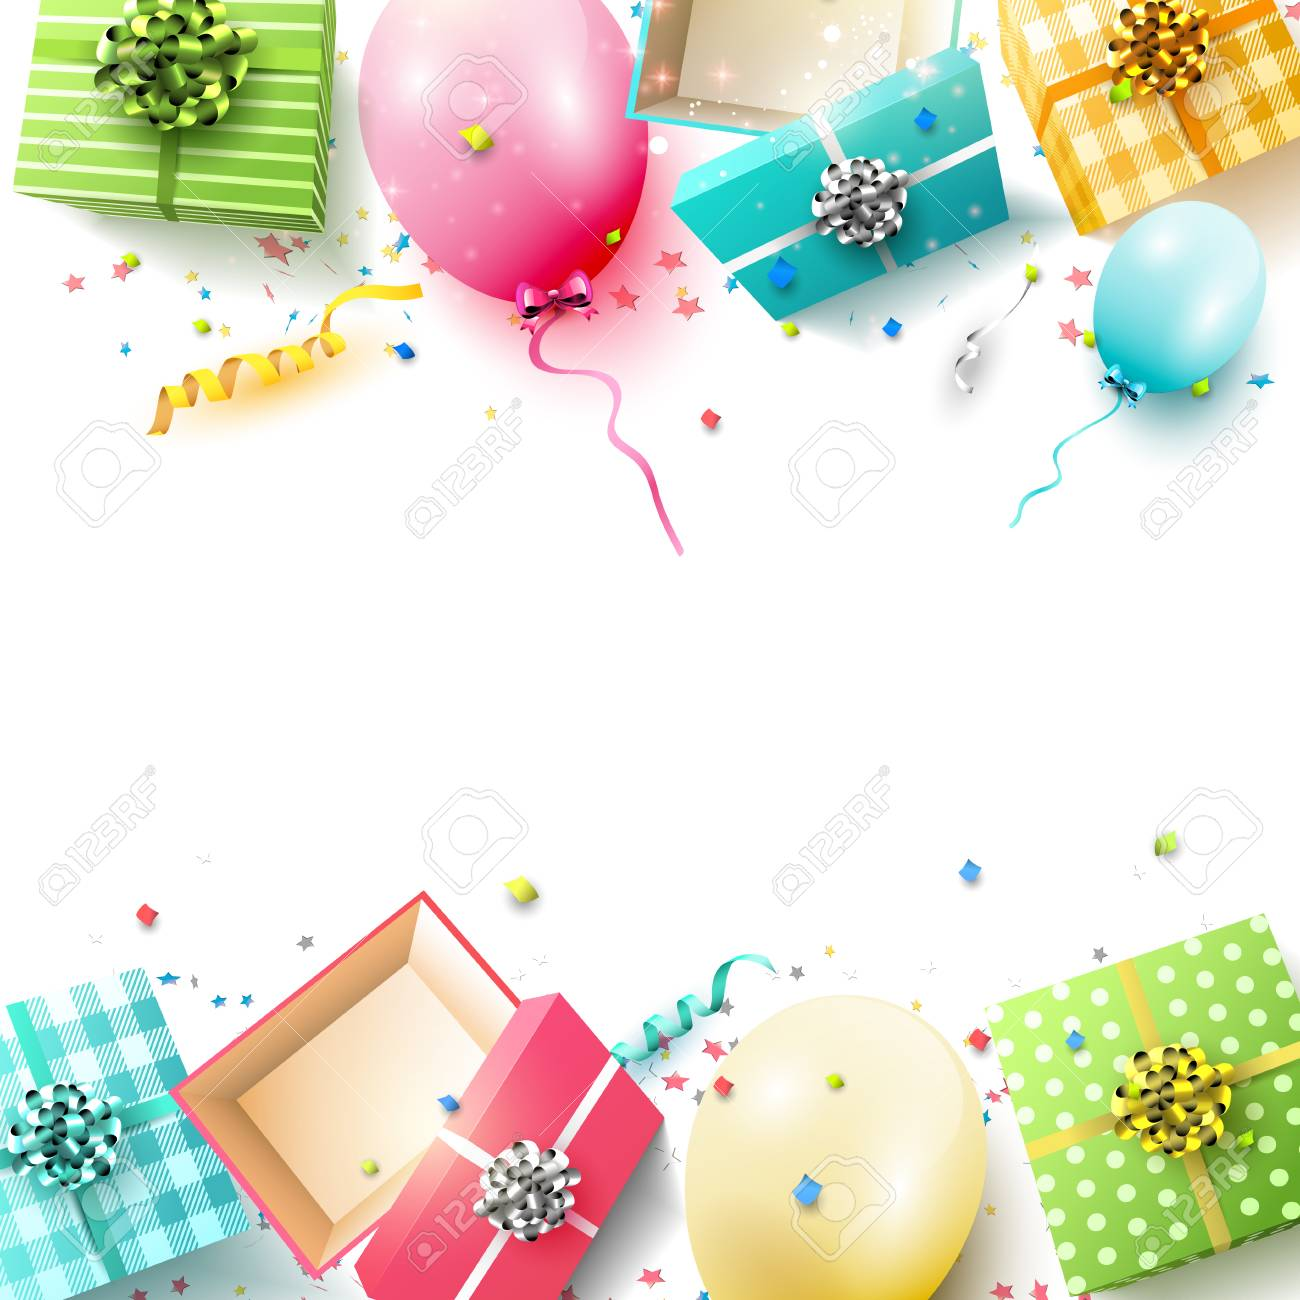 Happy Birthday Greeting Card With Colorful Gift Boxes And Balloons On White Background Stock Vector